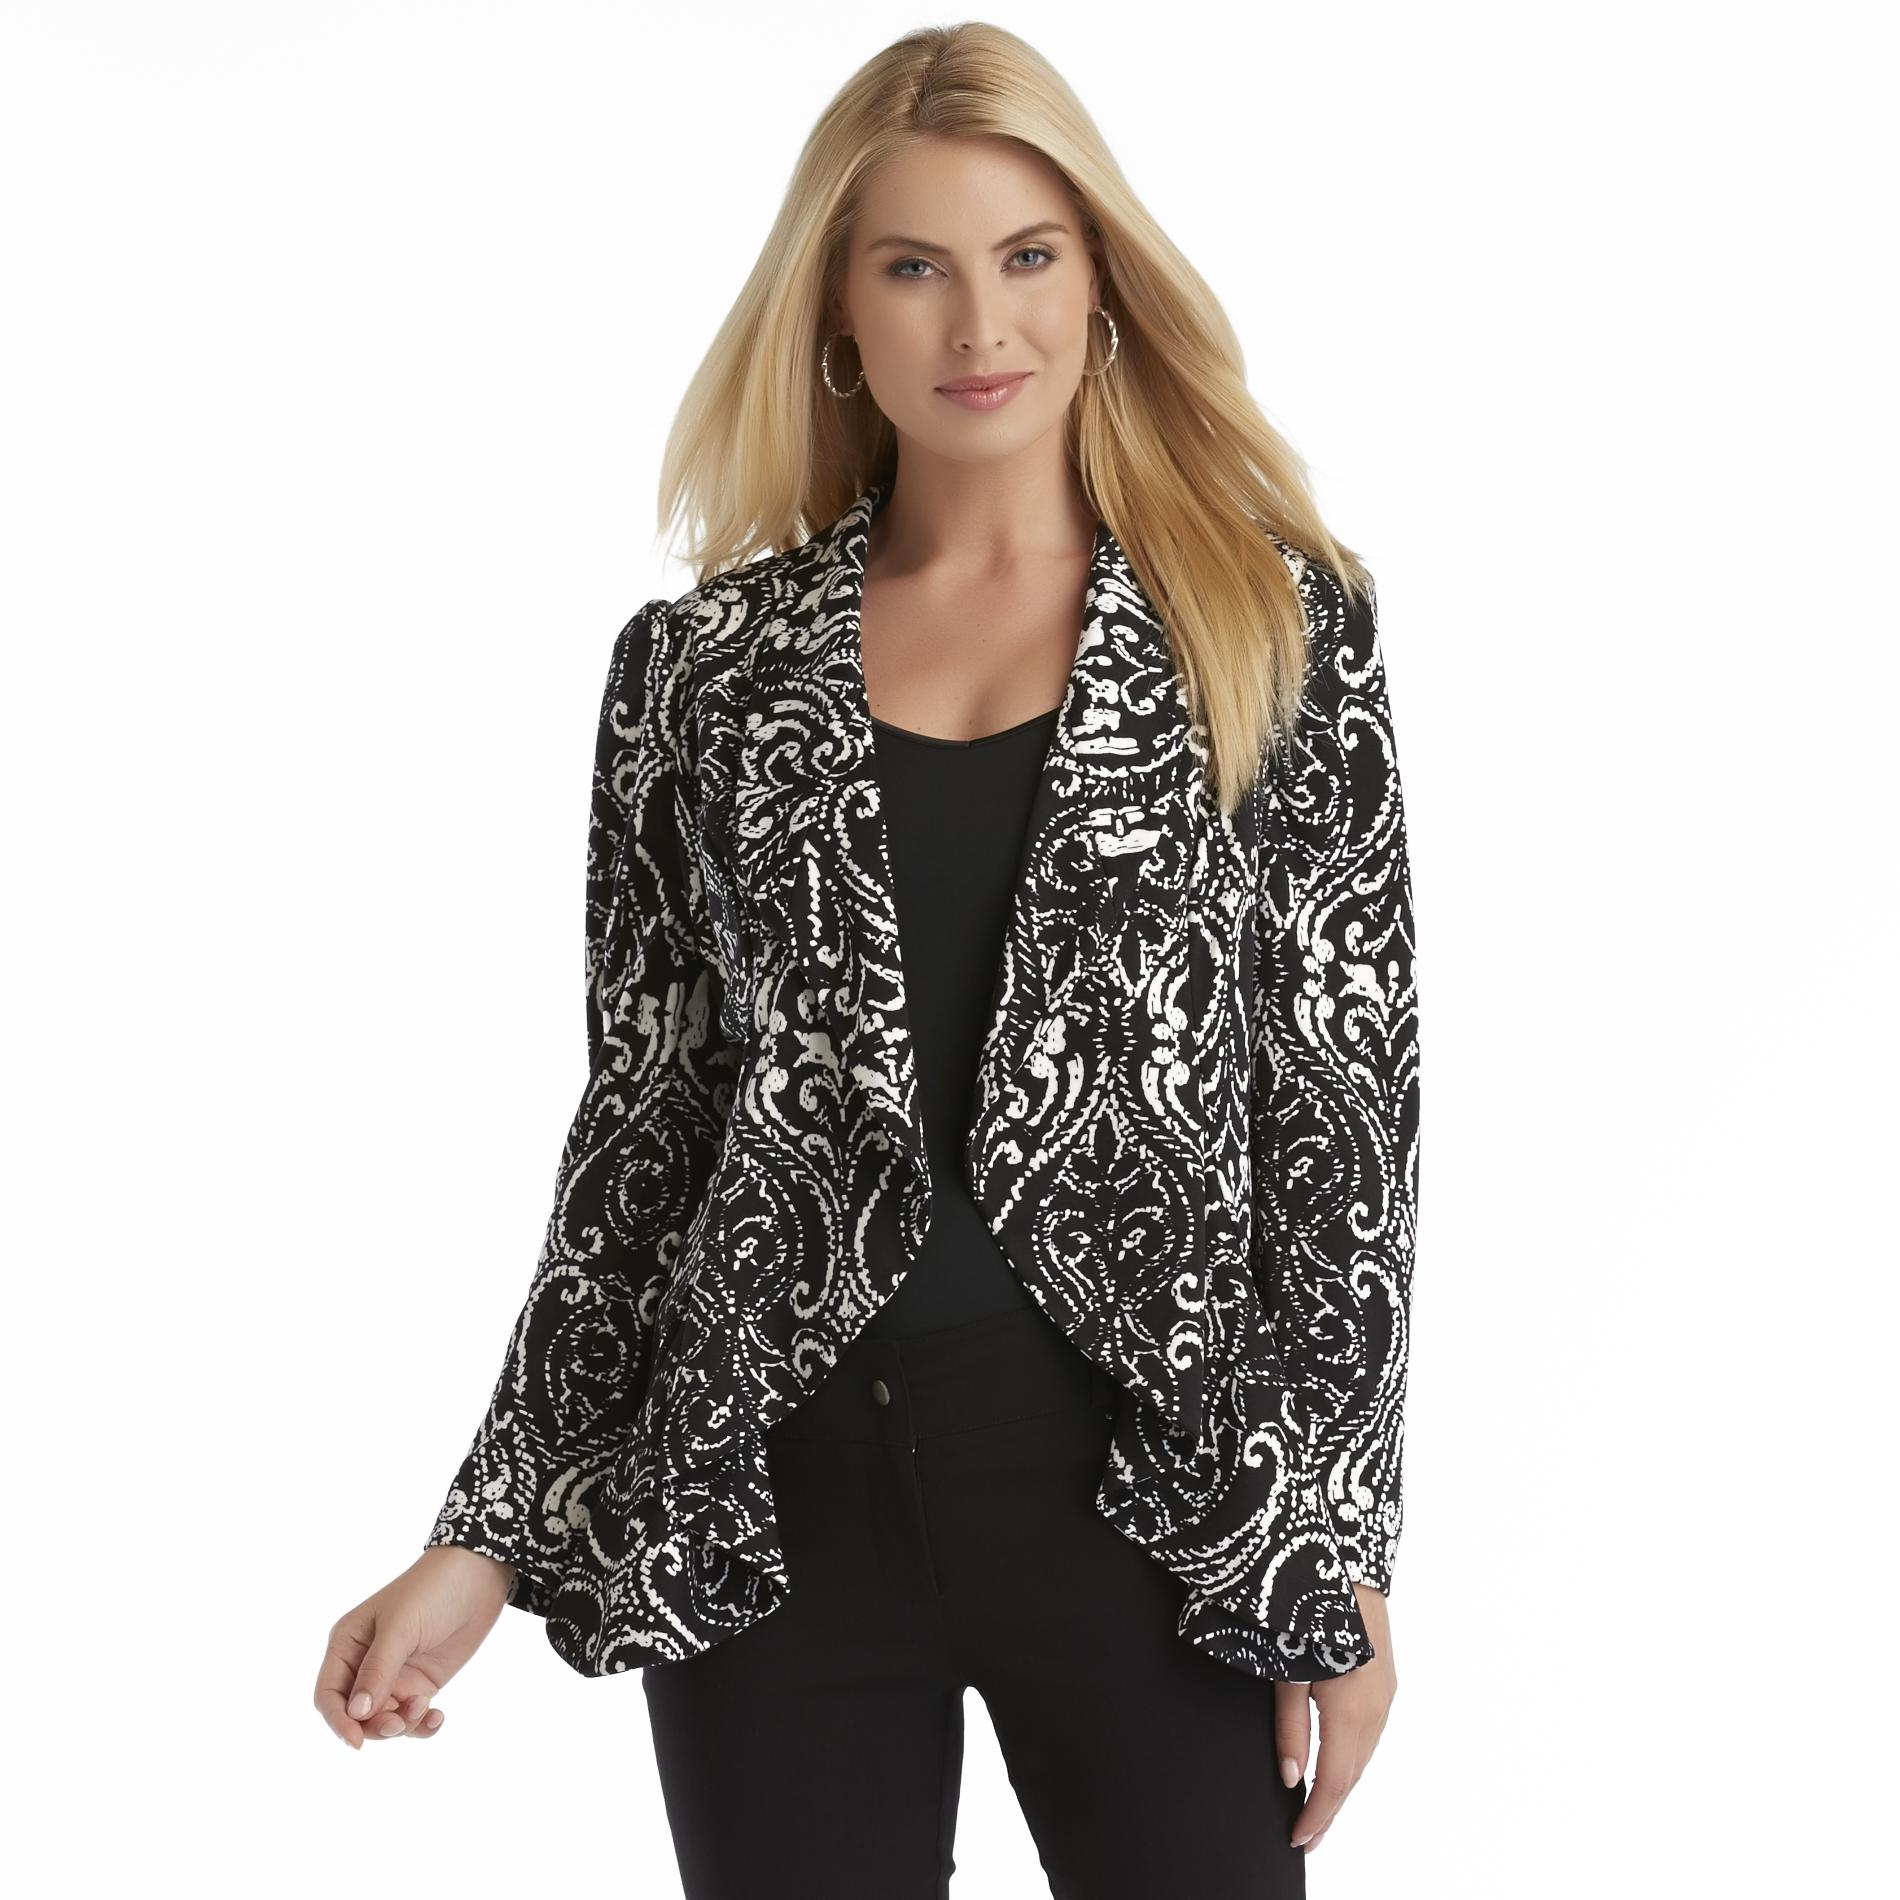 Covington Women's Open-Front Knit Jacket - Scrollwork Print at Sears.com